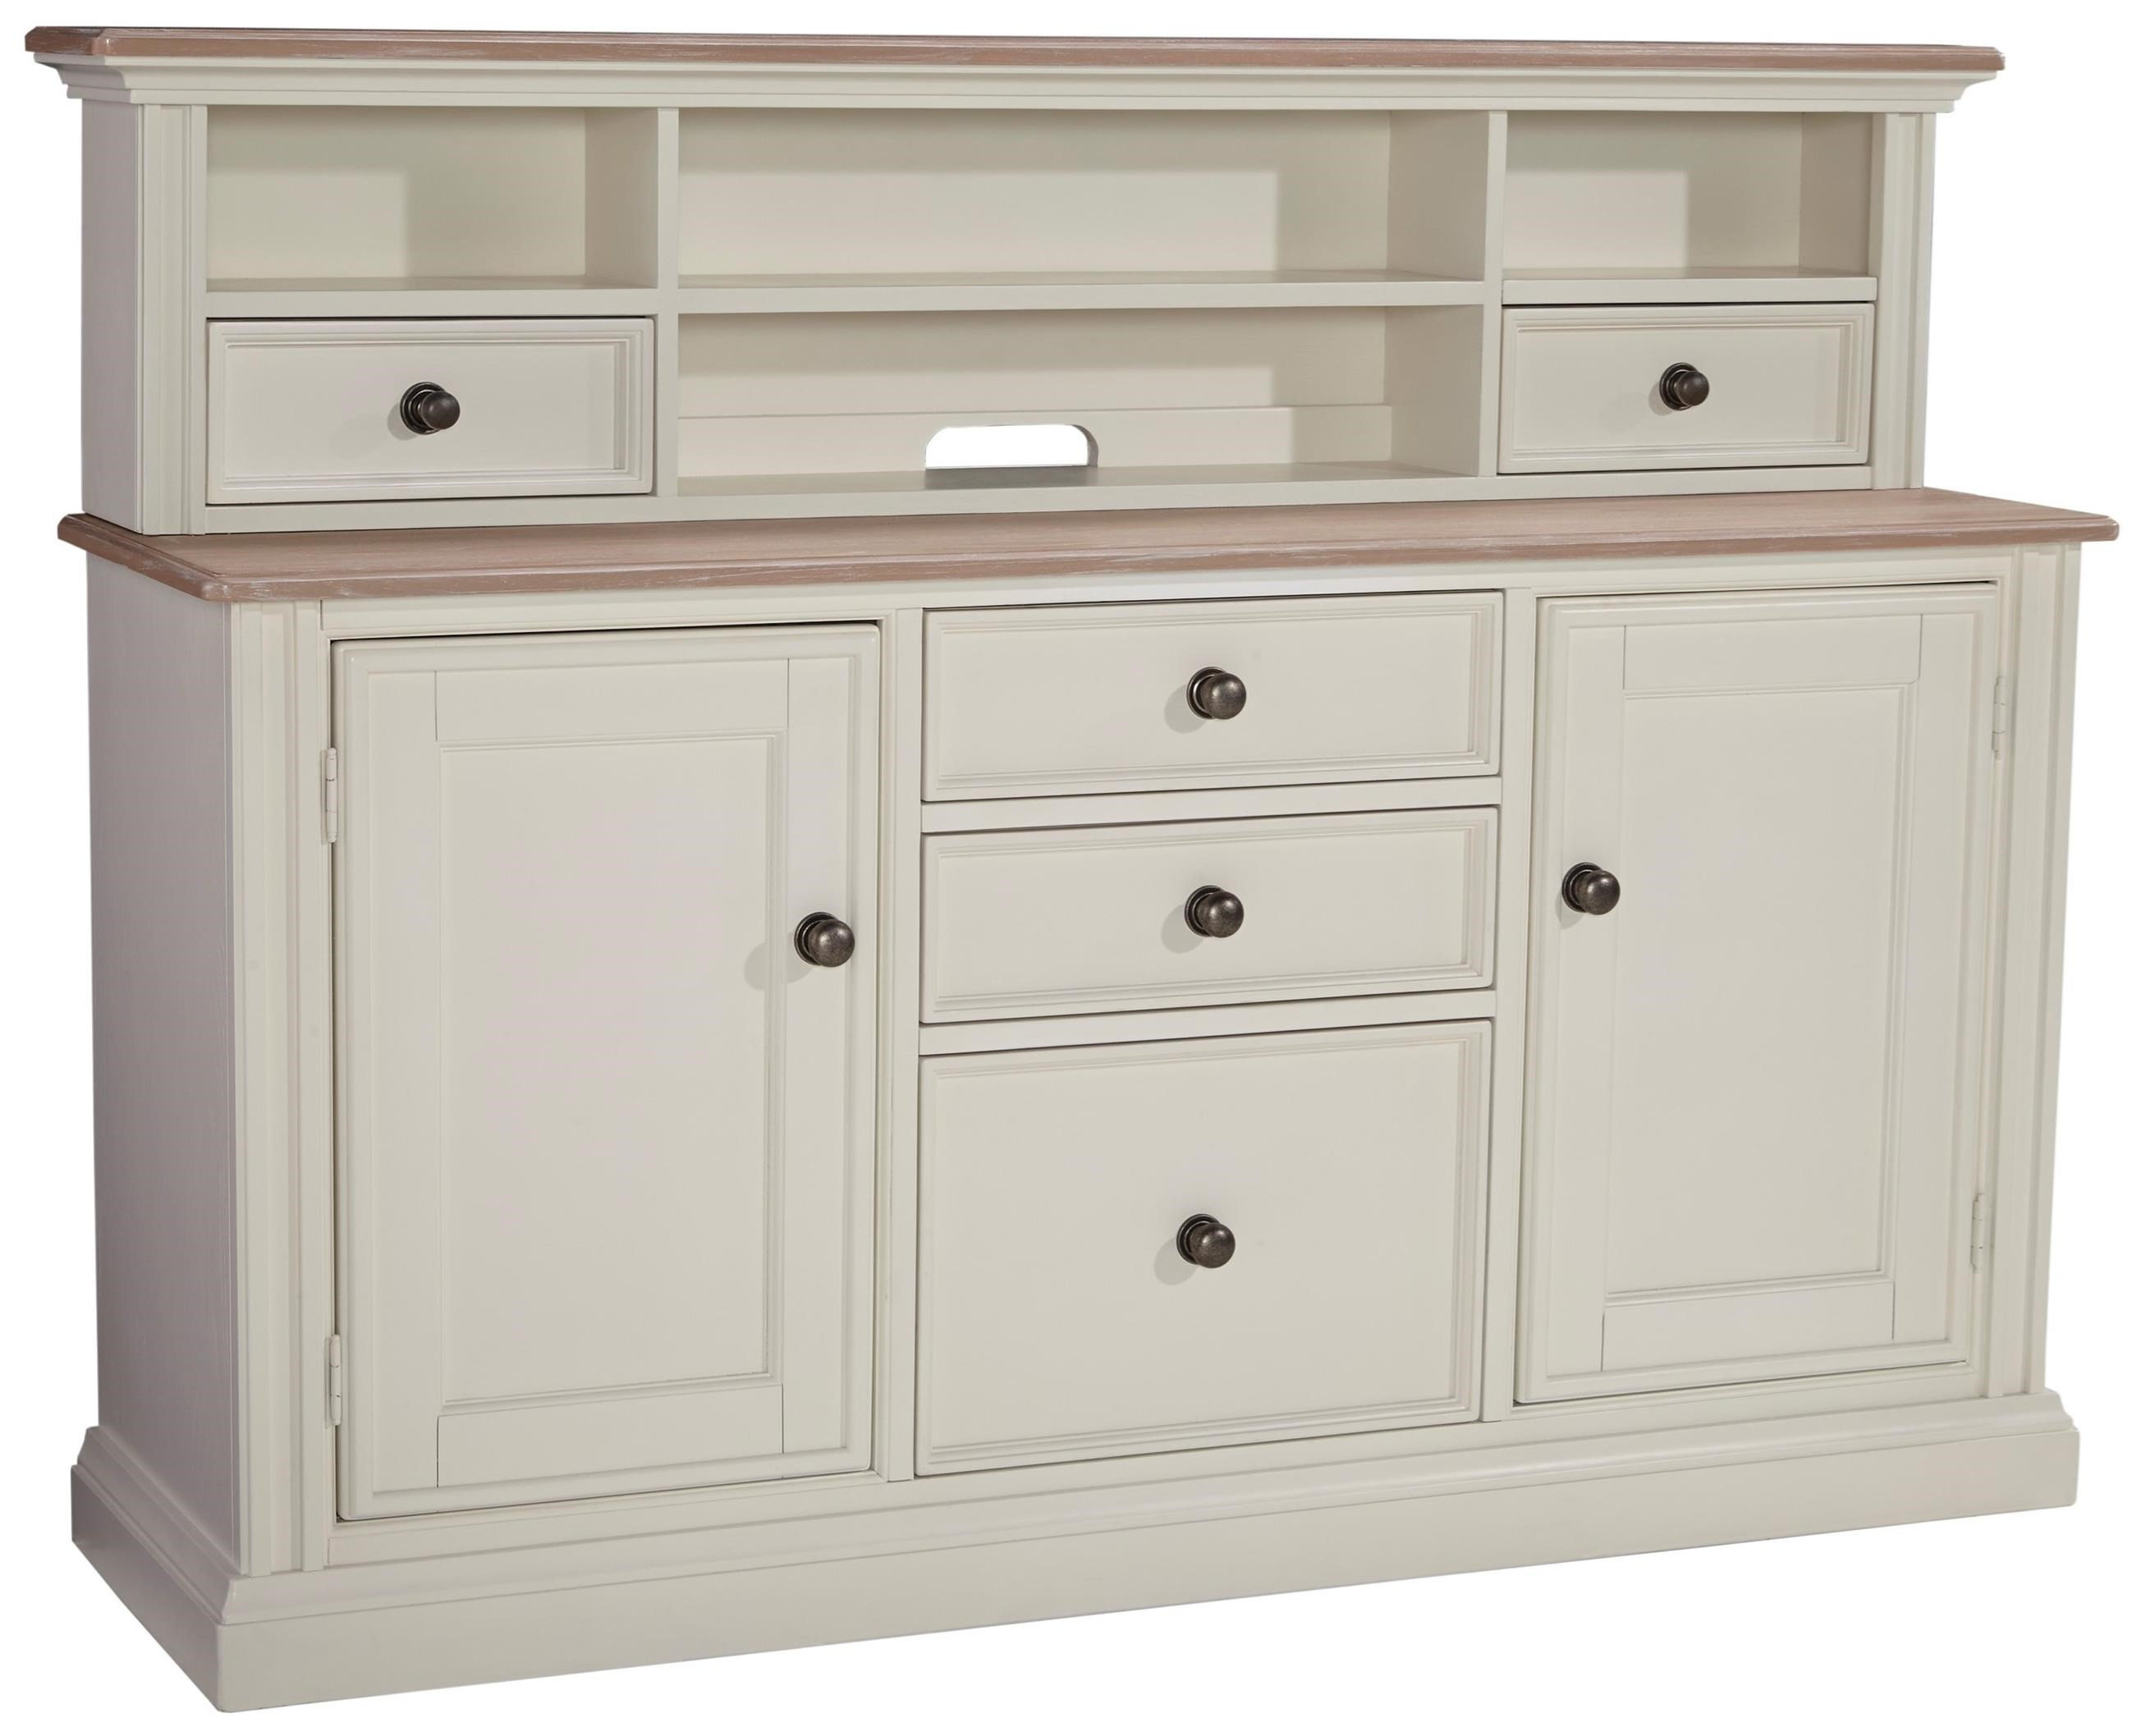 Signature Design by Ashley Sarvanny Large Credenza & Short Hutch - Item Number: H583-46+48